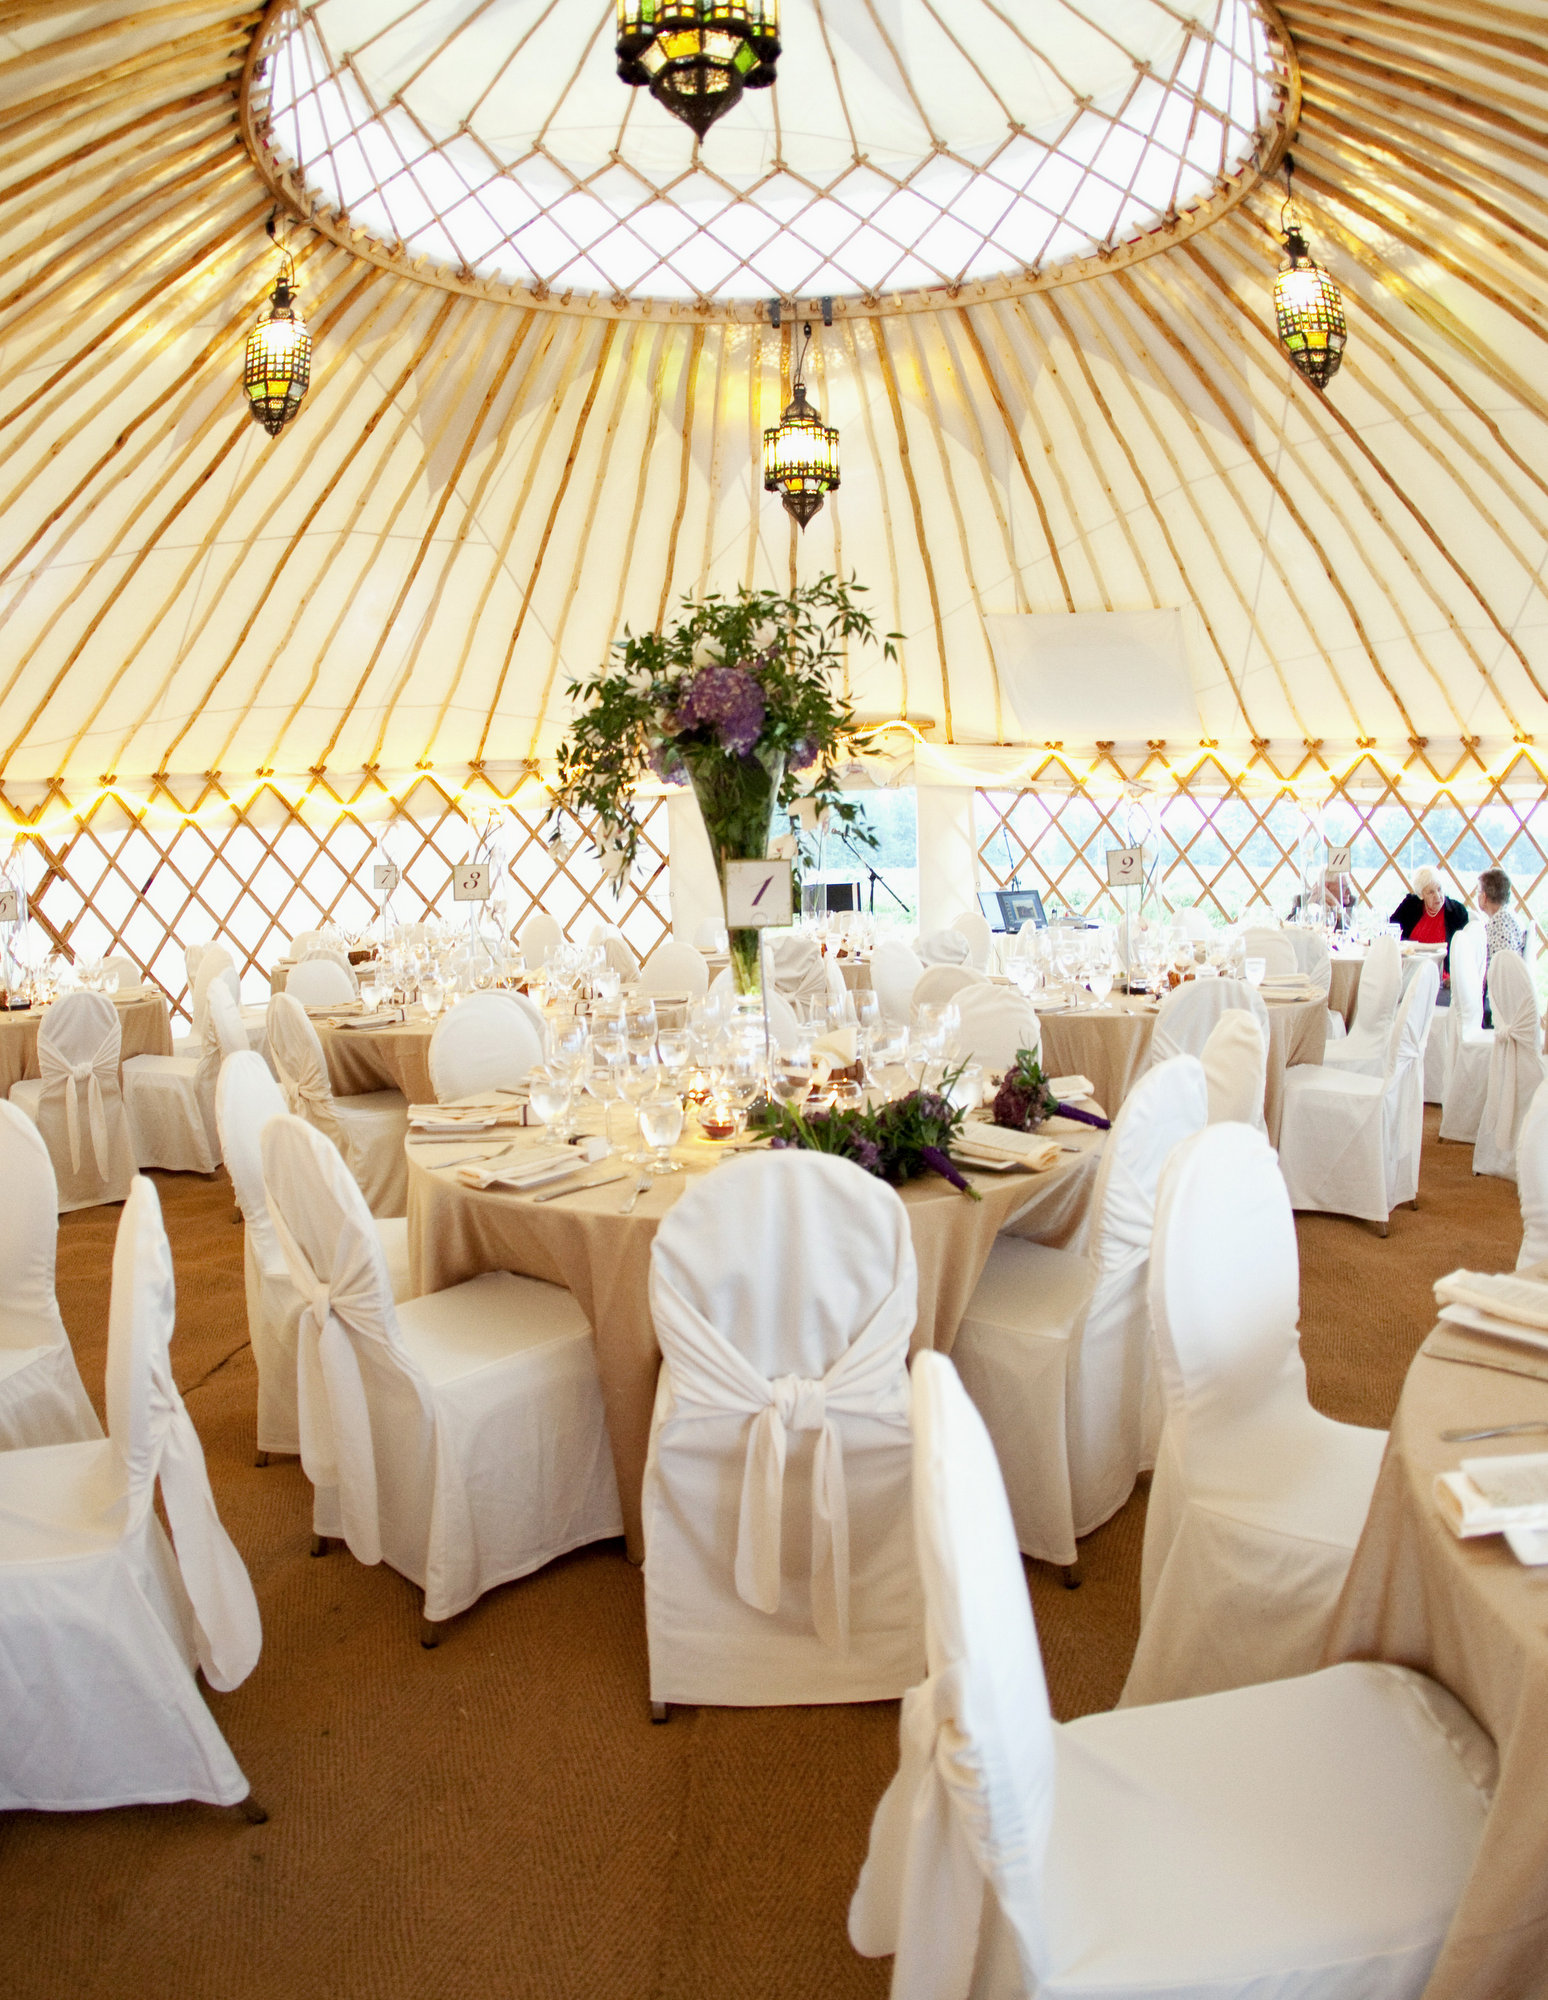 Elegant wedding reception in the Palace yurt